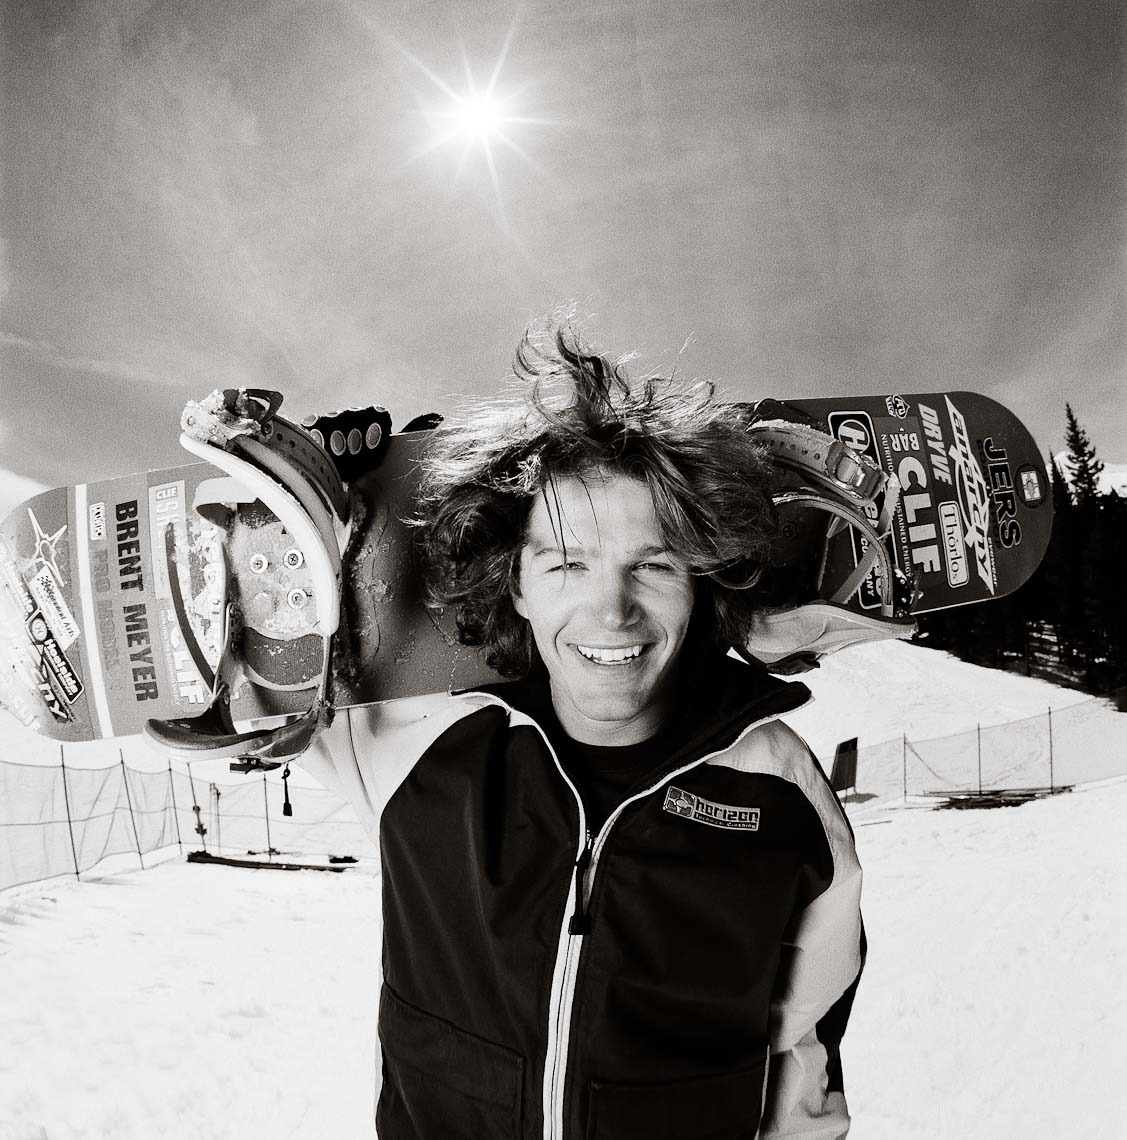 snow_board_guy_w-crazy_hair.jpg